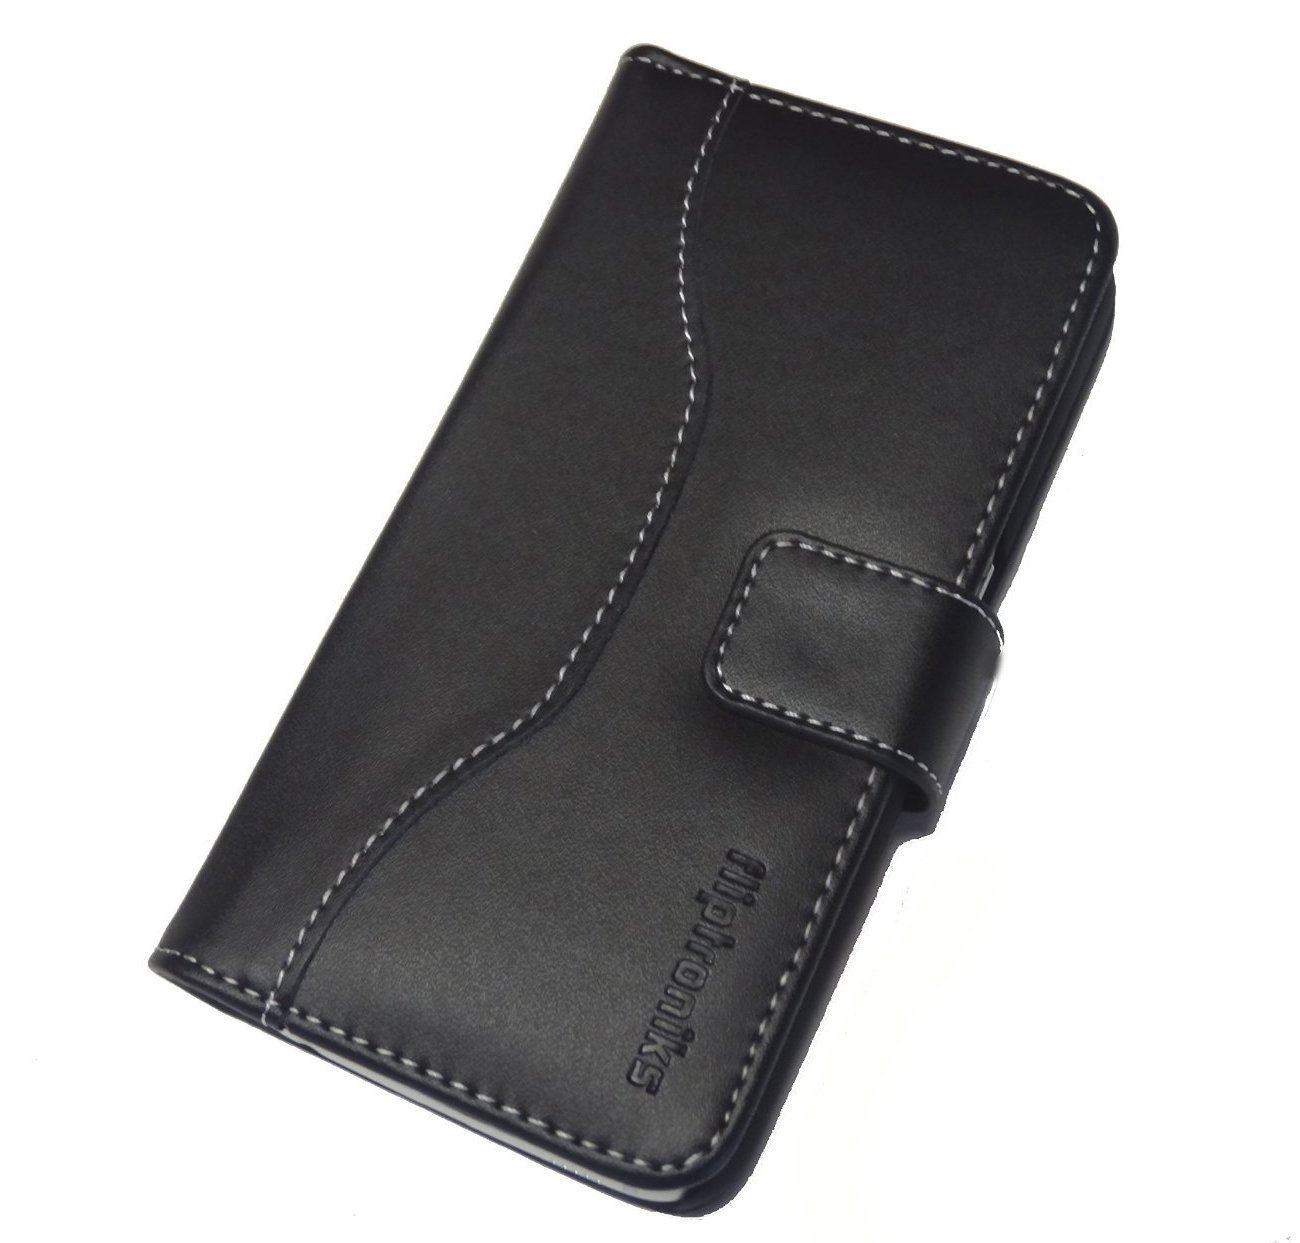 Fliptroniks Galaxy S6 Edge Leather Wallet